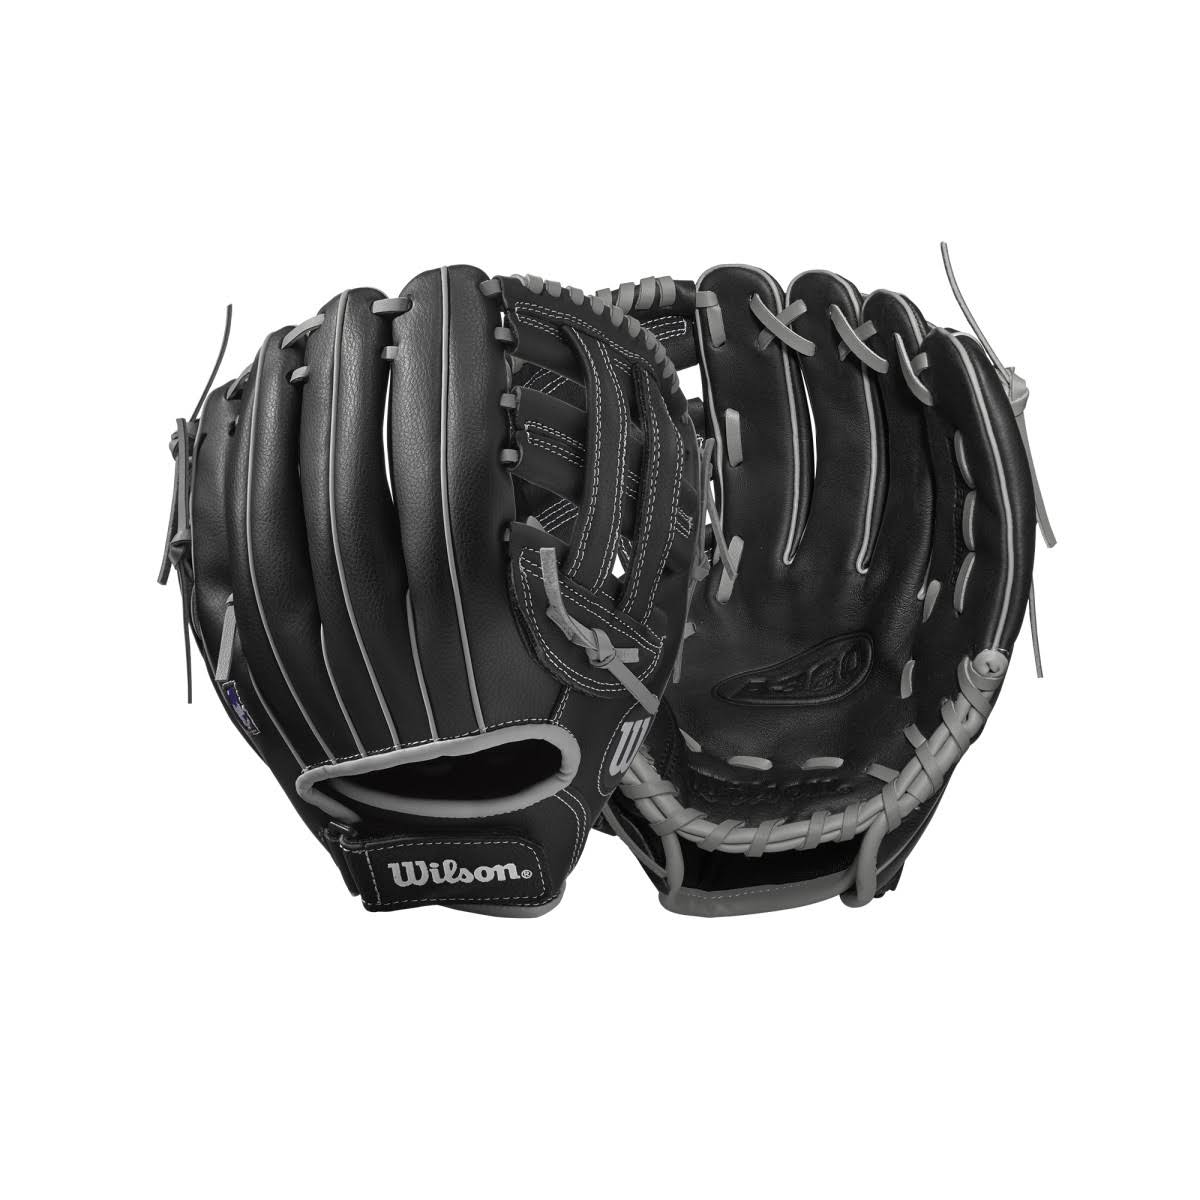 Wilson Youth Baseball Glove - Right Hand Throw, 11.5""